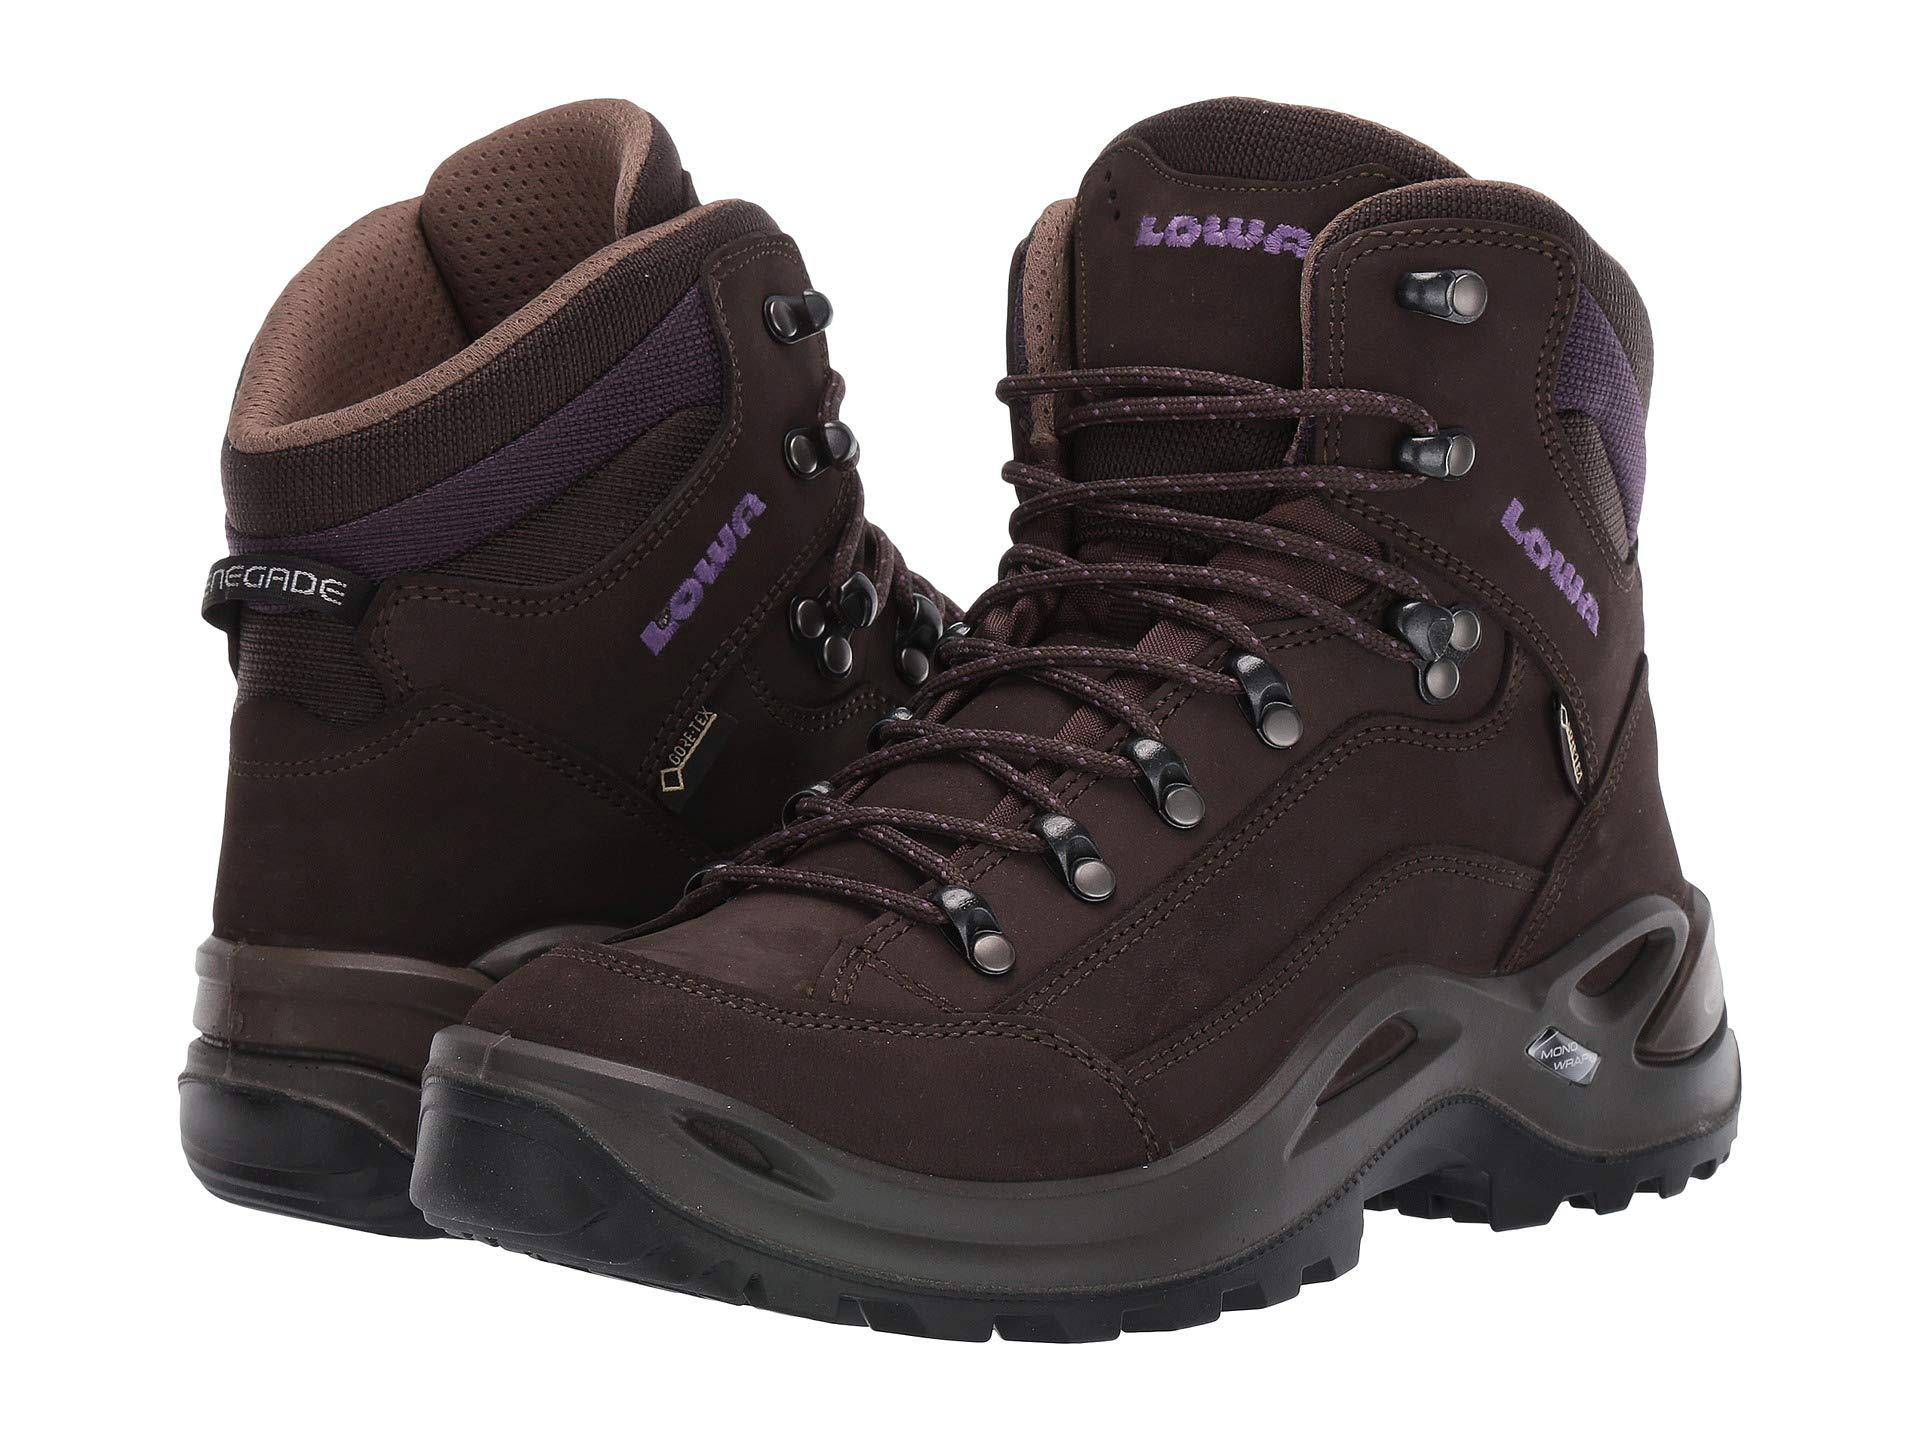 ef5d797b207 Lyst - Lowa Renegade Gtx Mid Ws (slate/blackberry) Women's Hiking Boots